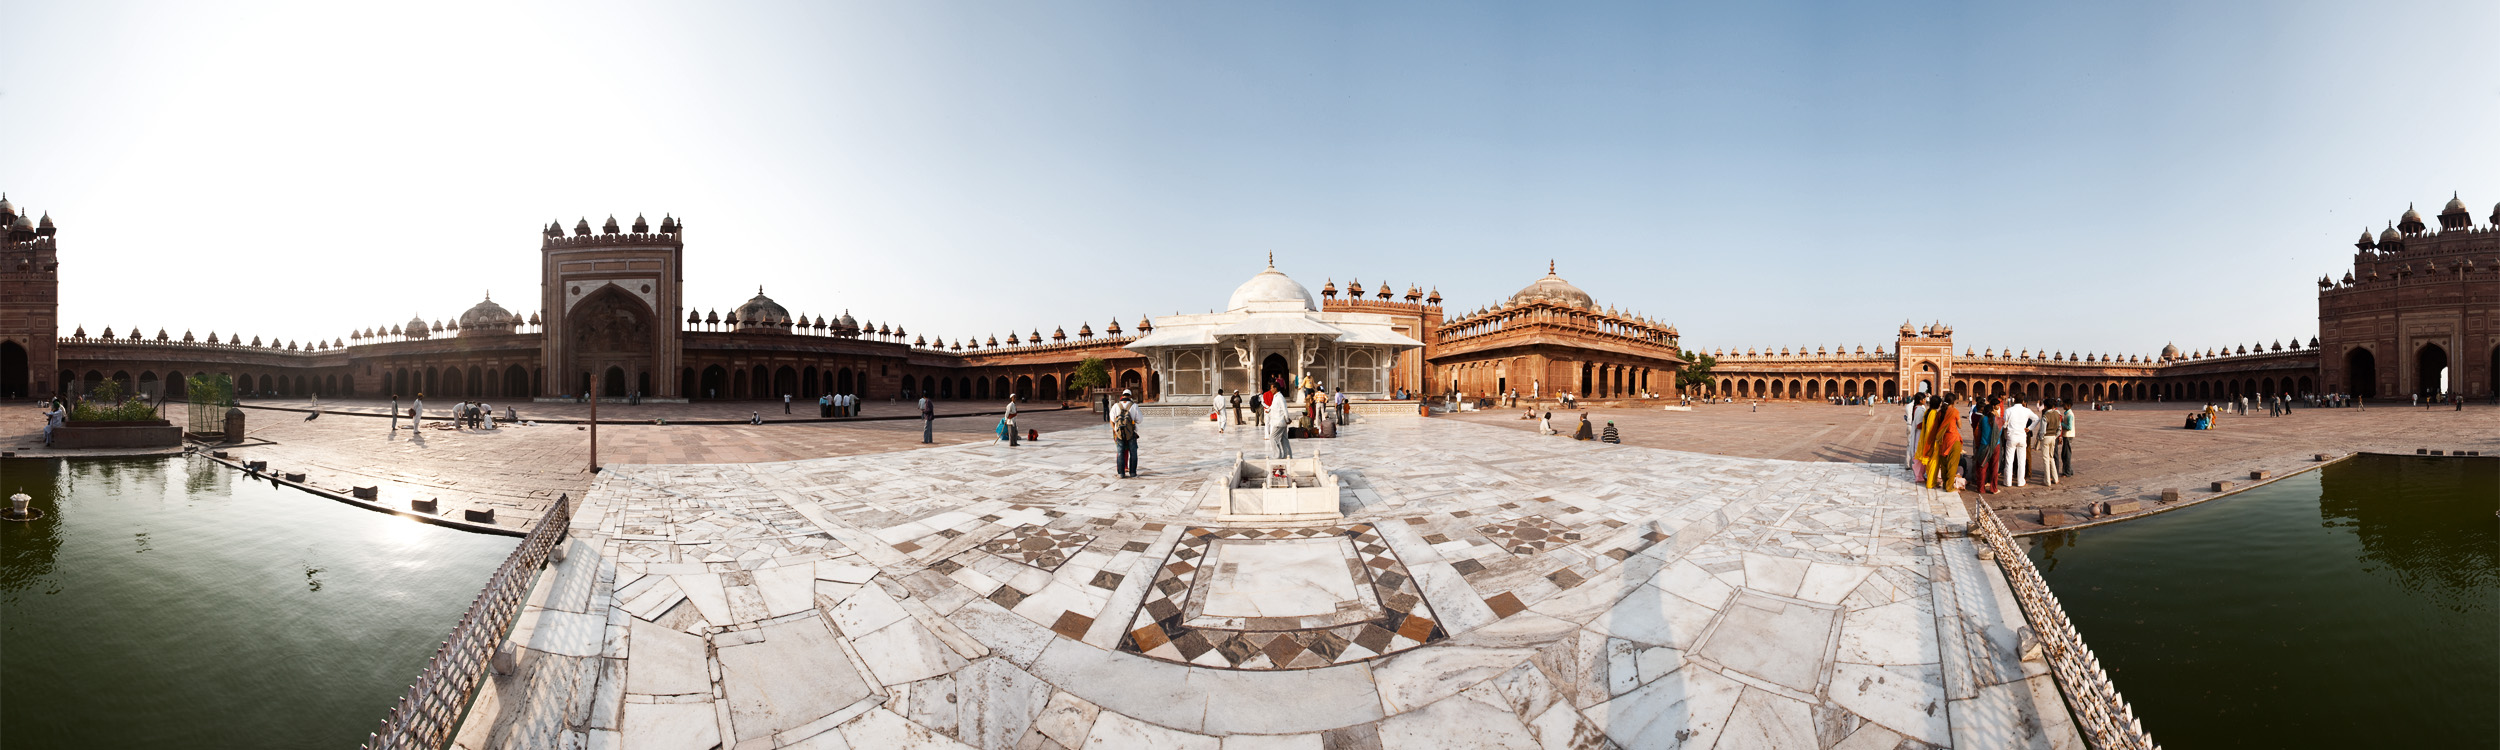 Panorama of Jama Masjid Courtyard. - Fatehpur Sikri, Uttar Pradesh, India - Daily Travel Photos